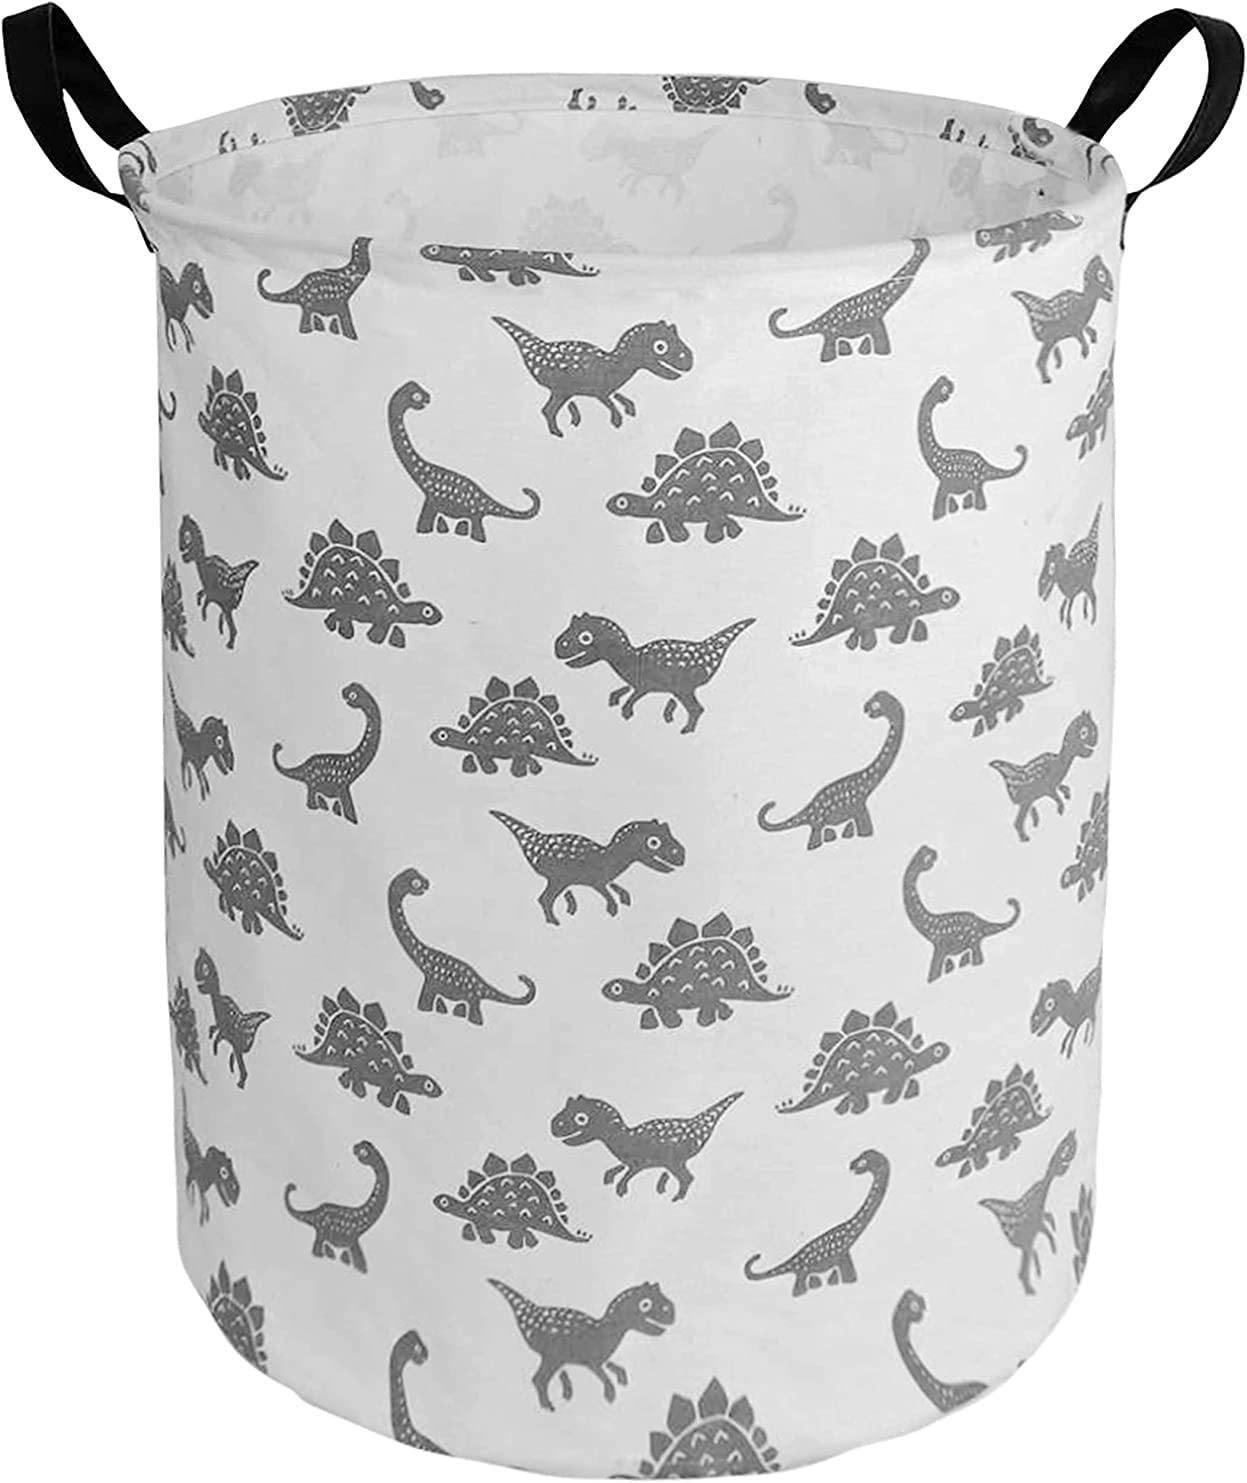 ZUEXT 19.7x15.7 Inch Large Dinosaur Laundry Basket, Waterproof Collapsible Fabric Storage bin with Handles for Clothes, Kids Boys Nursery Bedroom, Toy Storage, Baby Shower Xmas Birthday Gift Basket